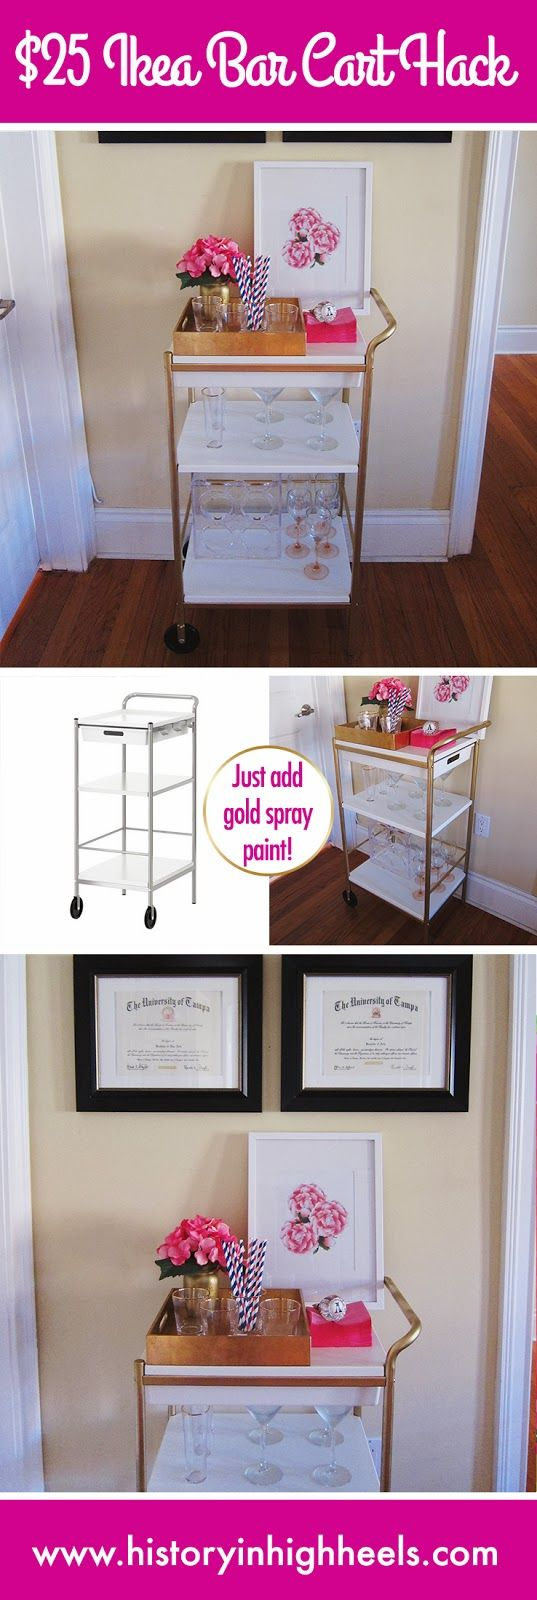 Ikea bar cart hack